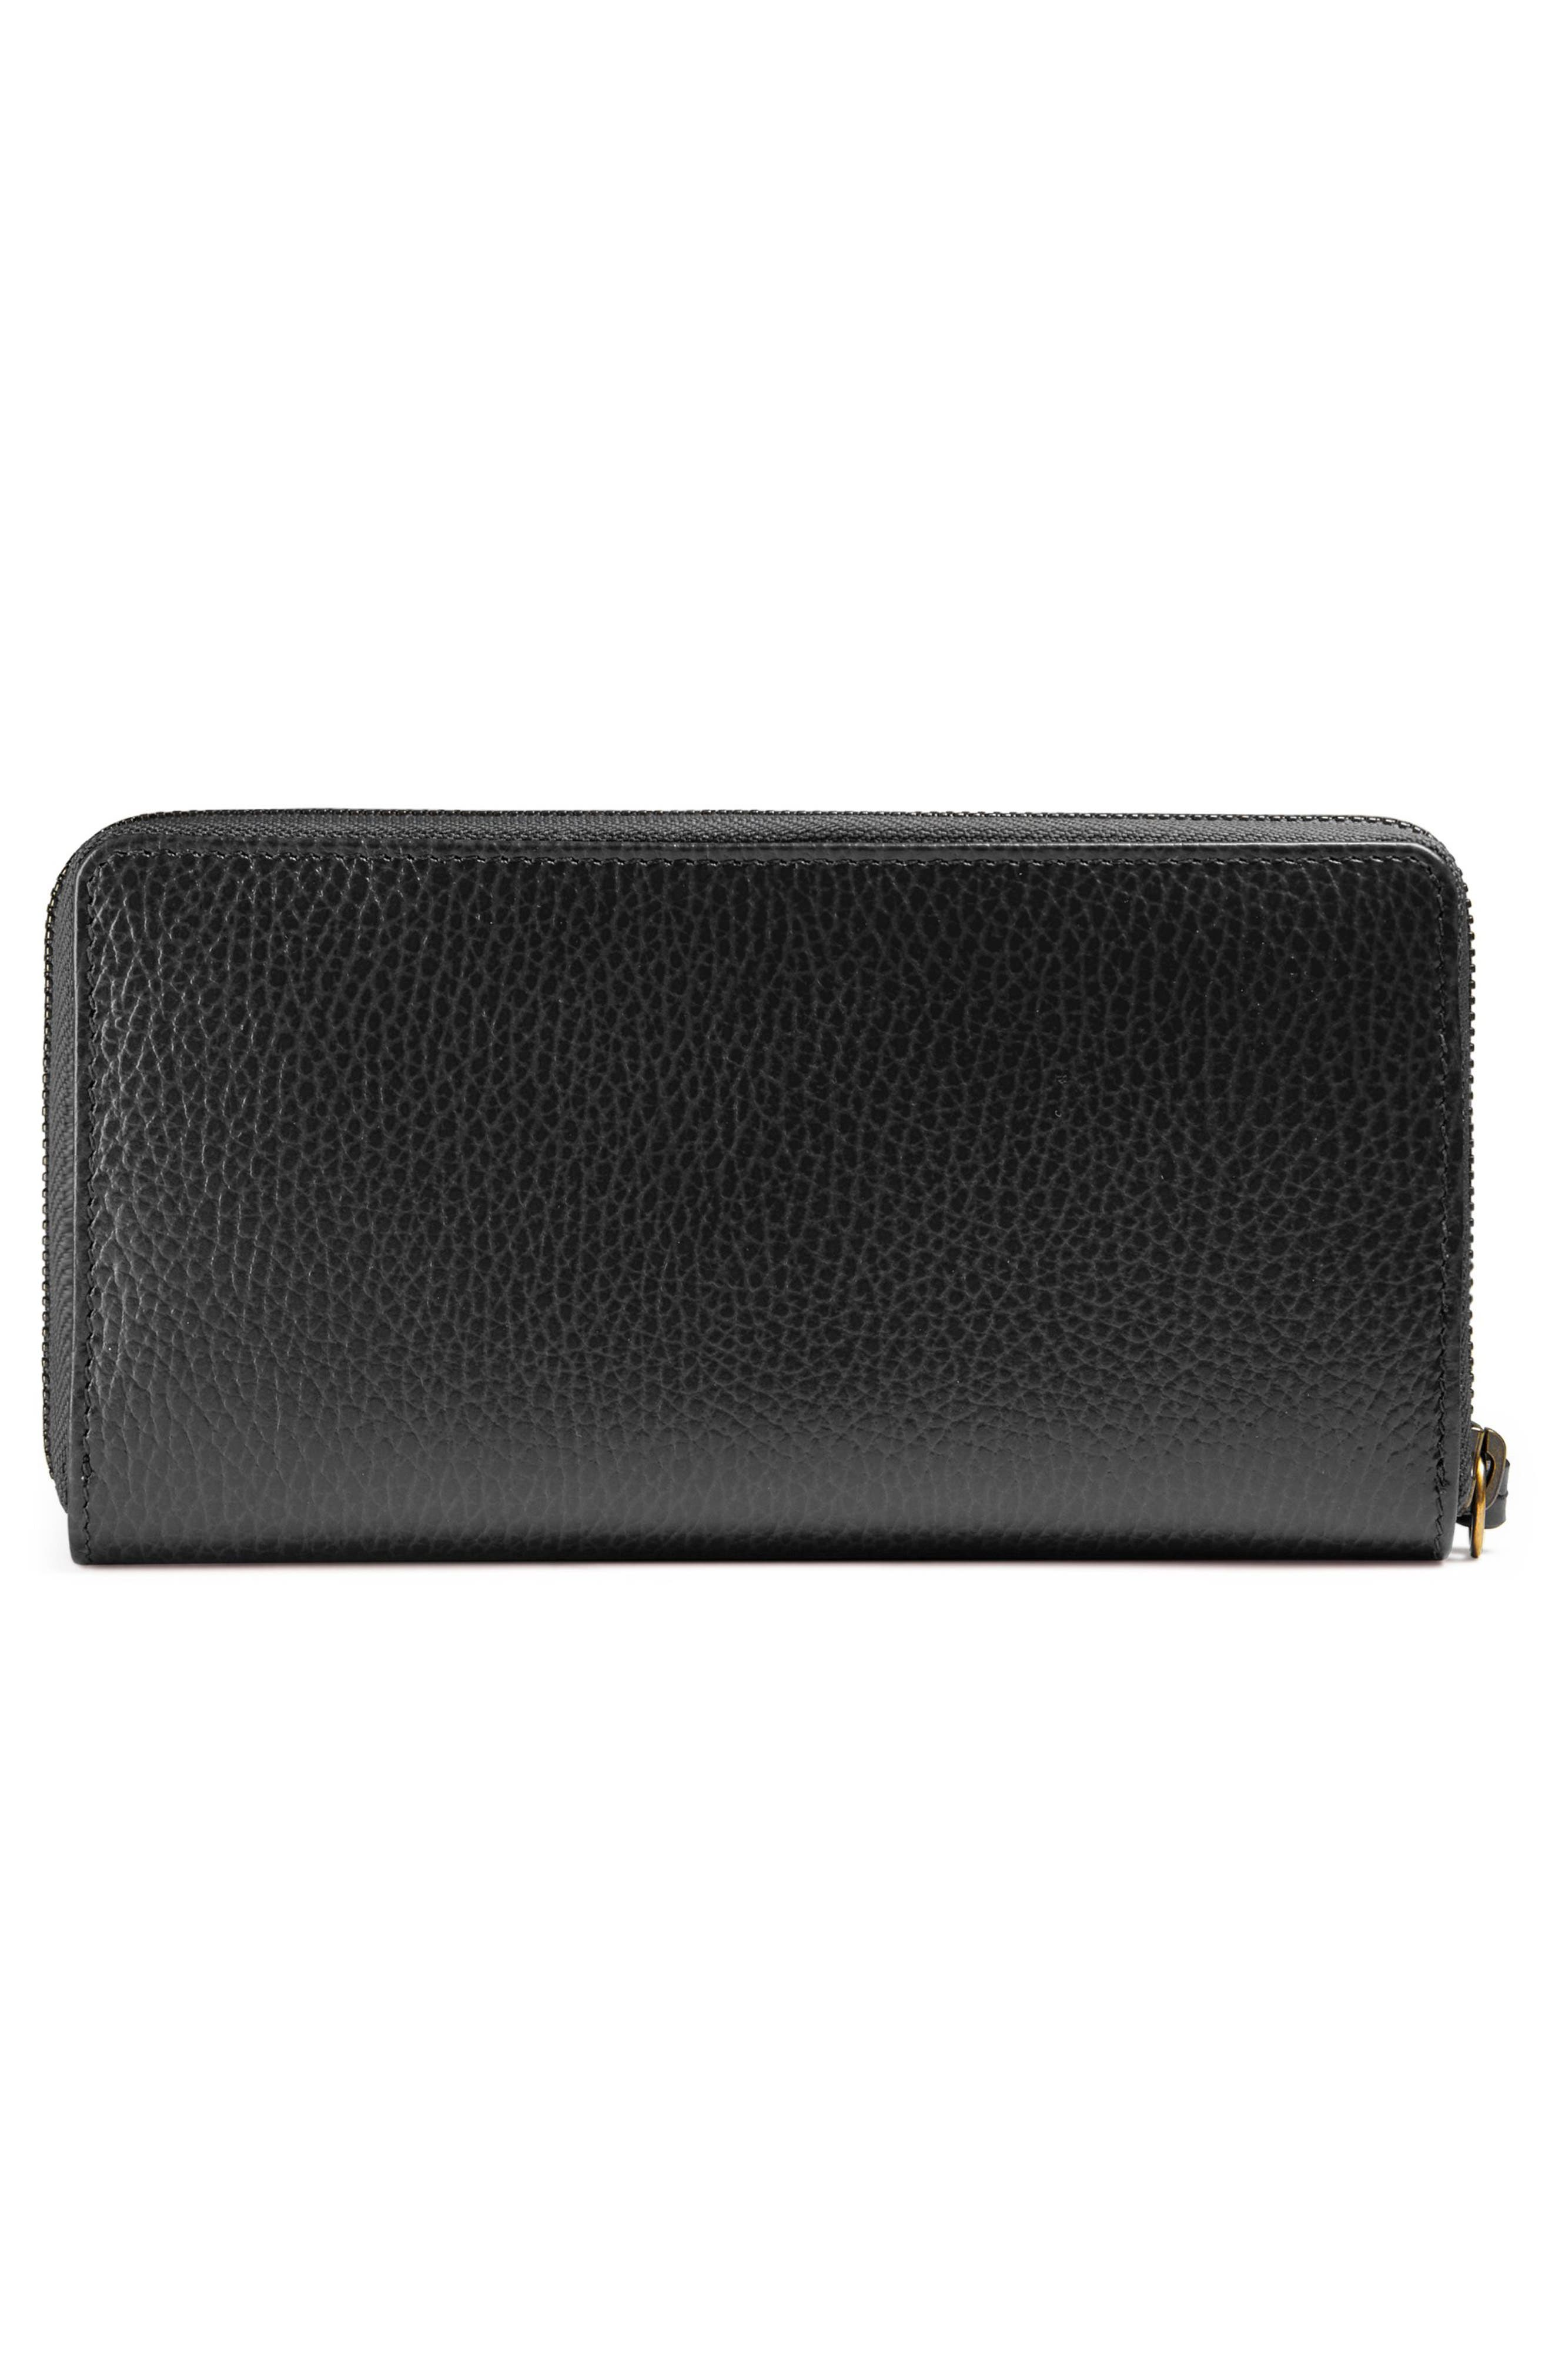 Farfalla Zip Around Leather Wallet,                             Alternate thumbnail 3, color,                             NERO/ CRYSTAL